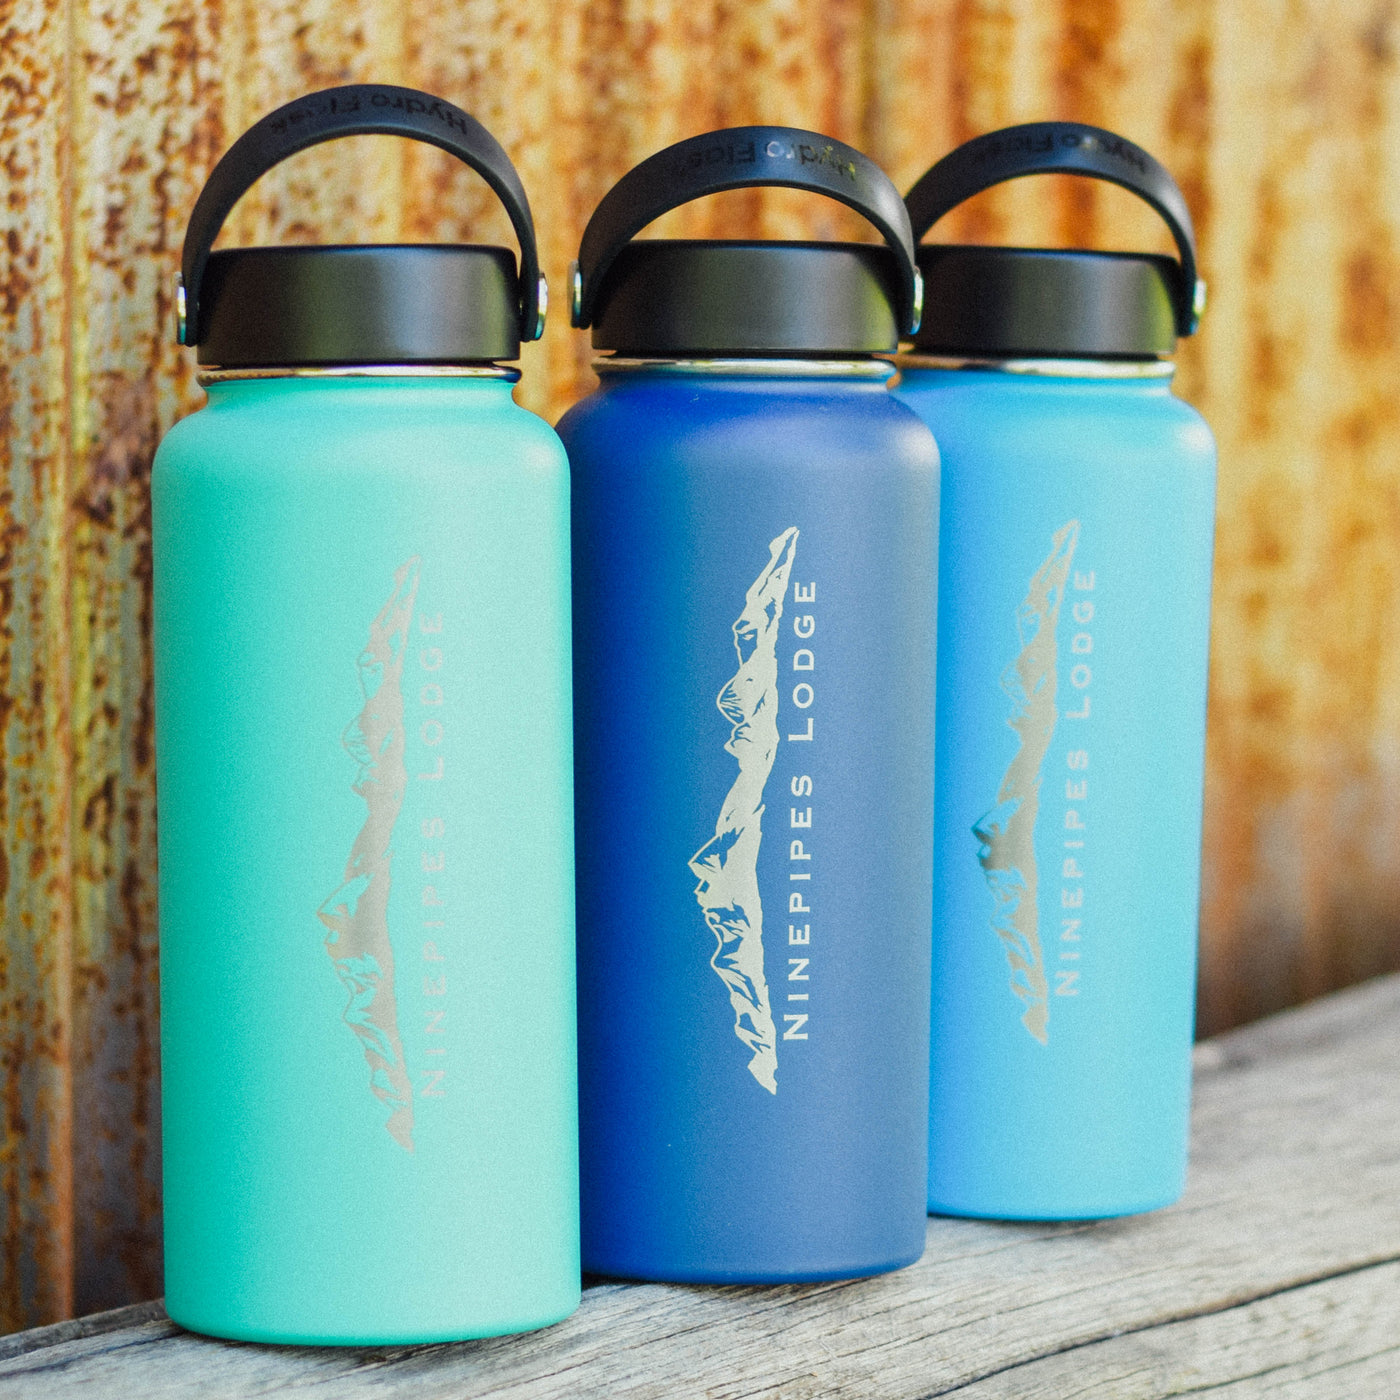 Ninepipes HydroFlask Water Bottles